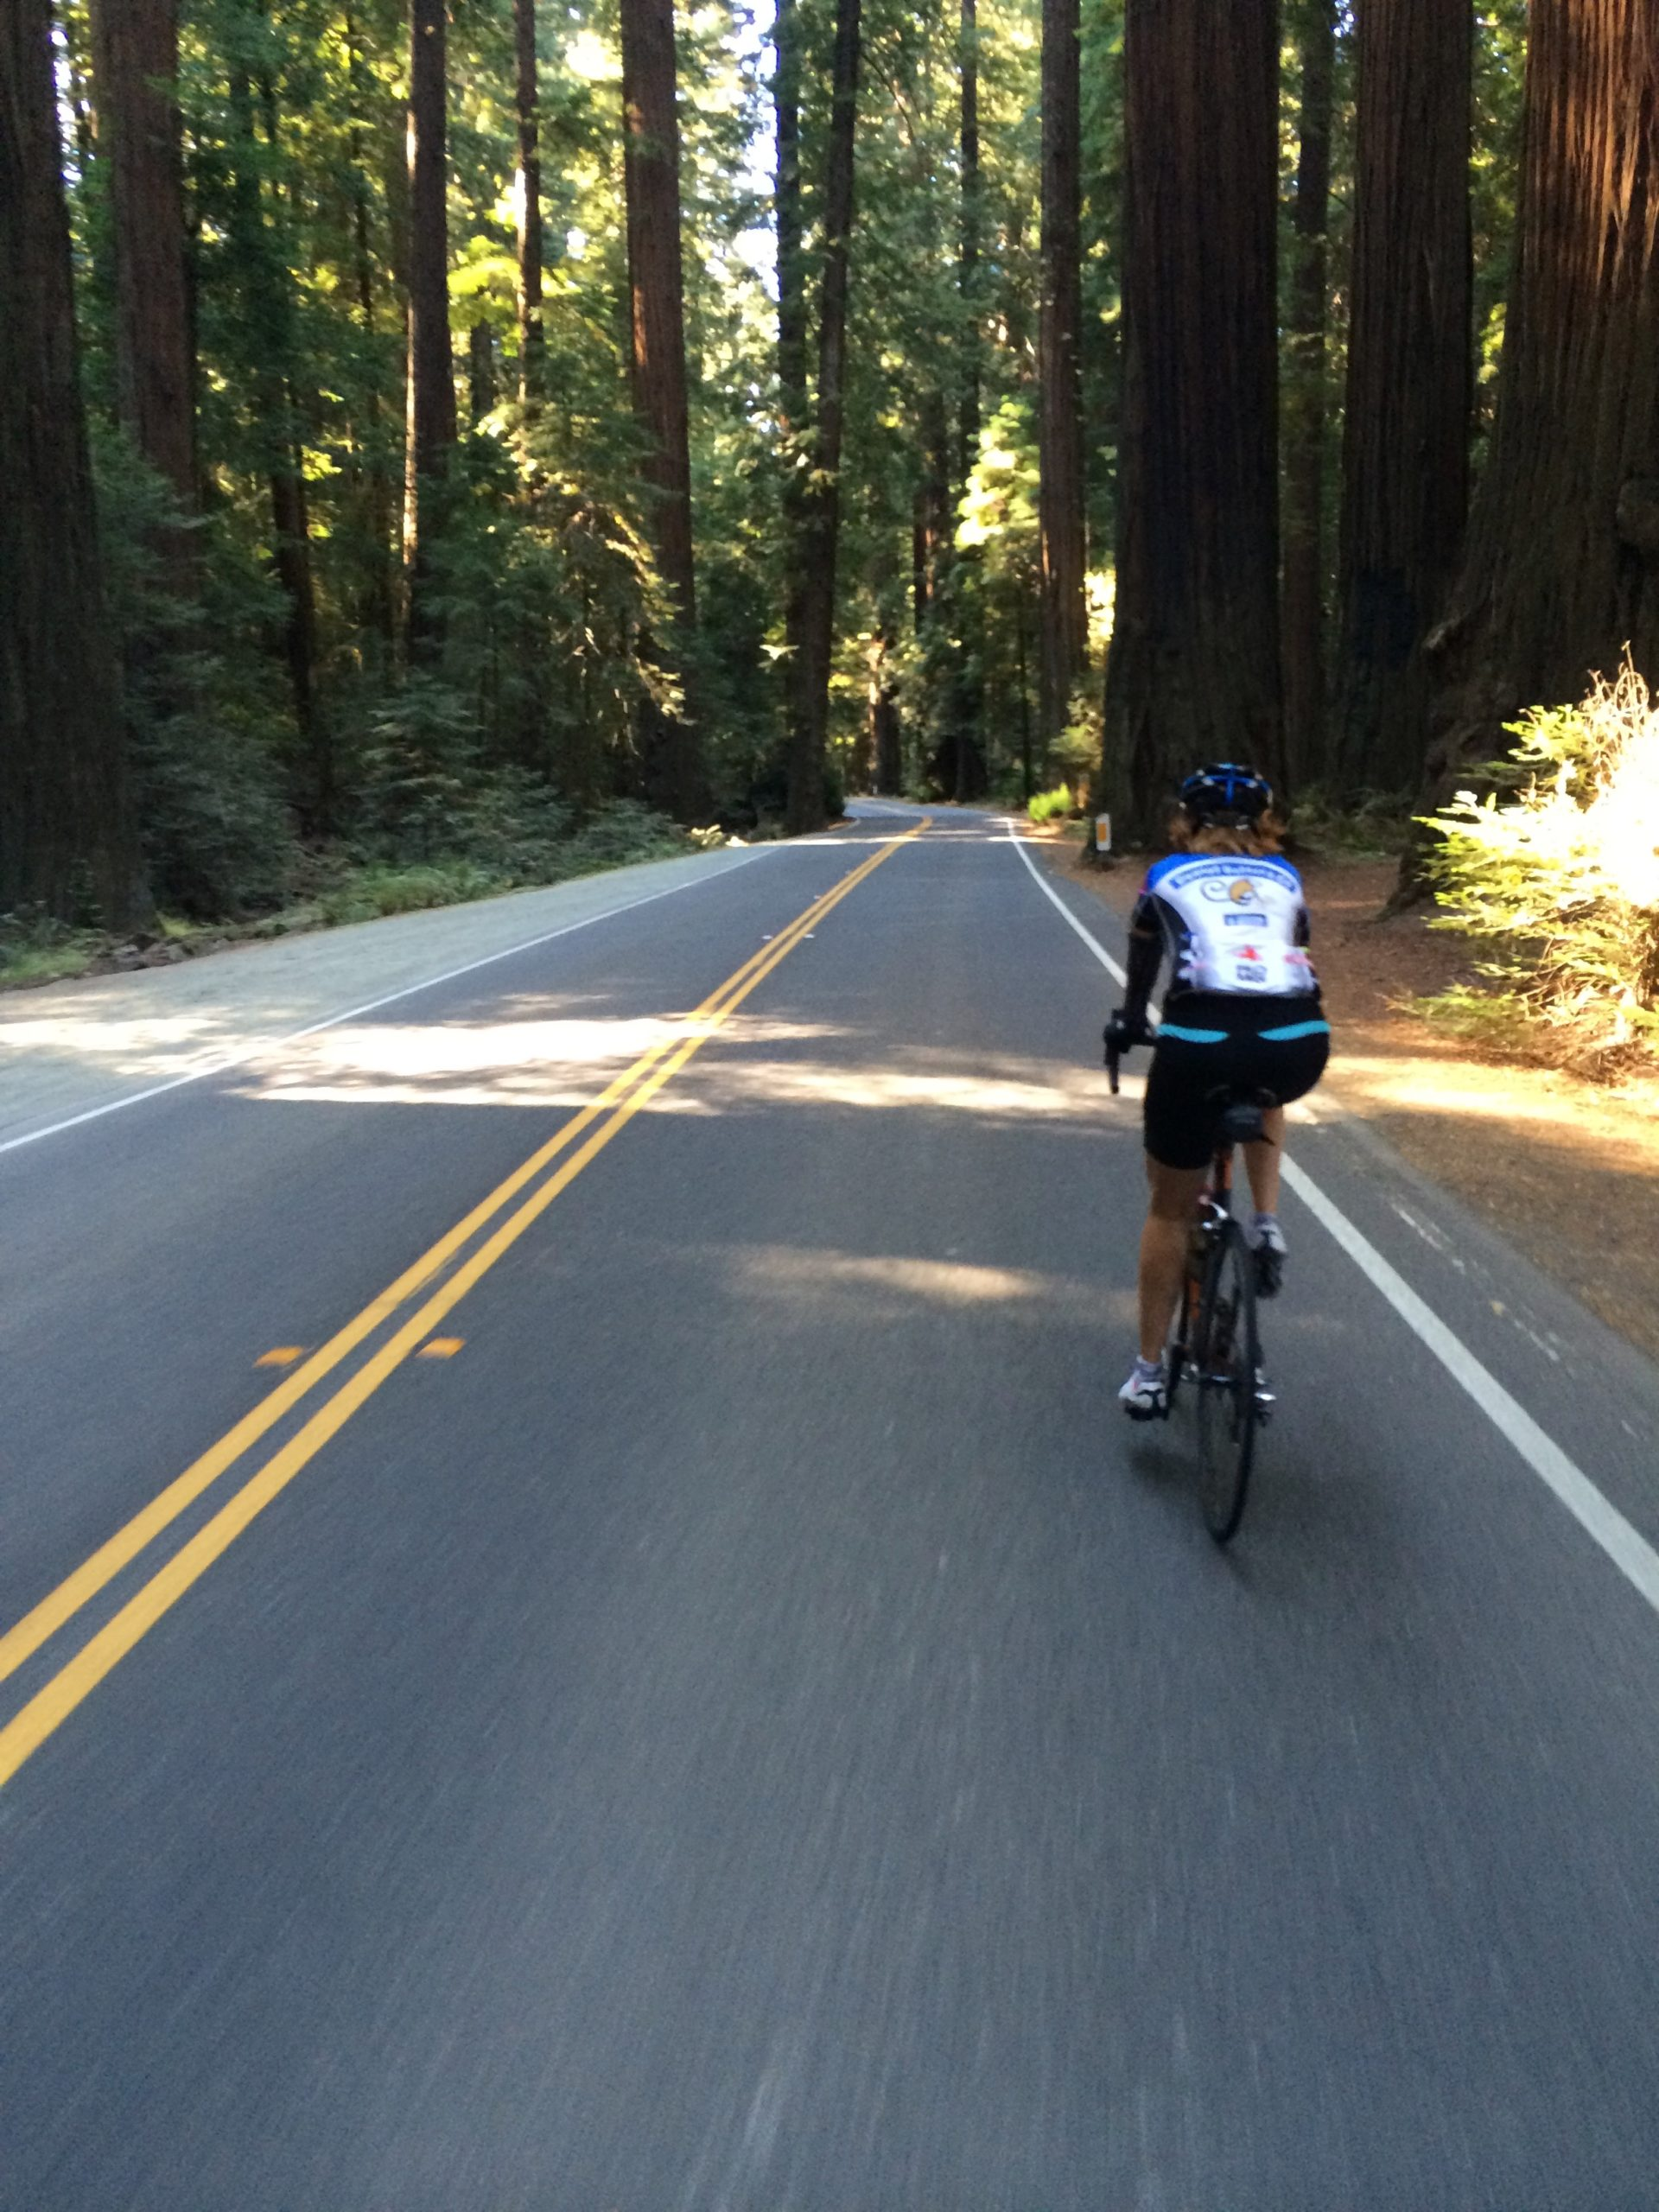 Woman cyclist riding the road Avenue of the Giants in Humboldt county, California.